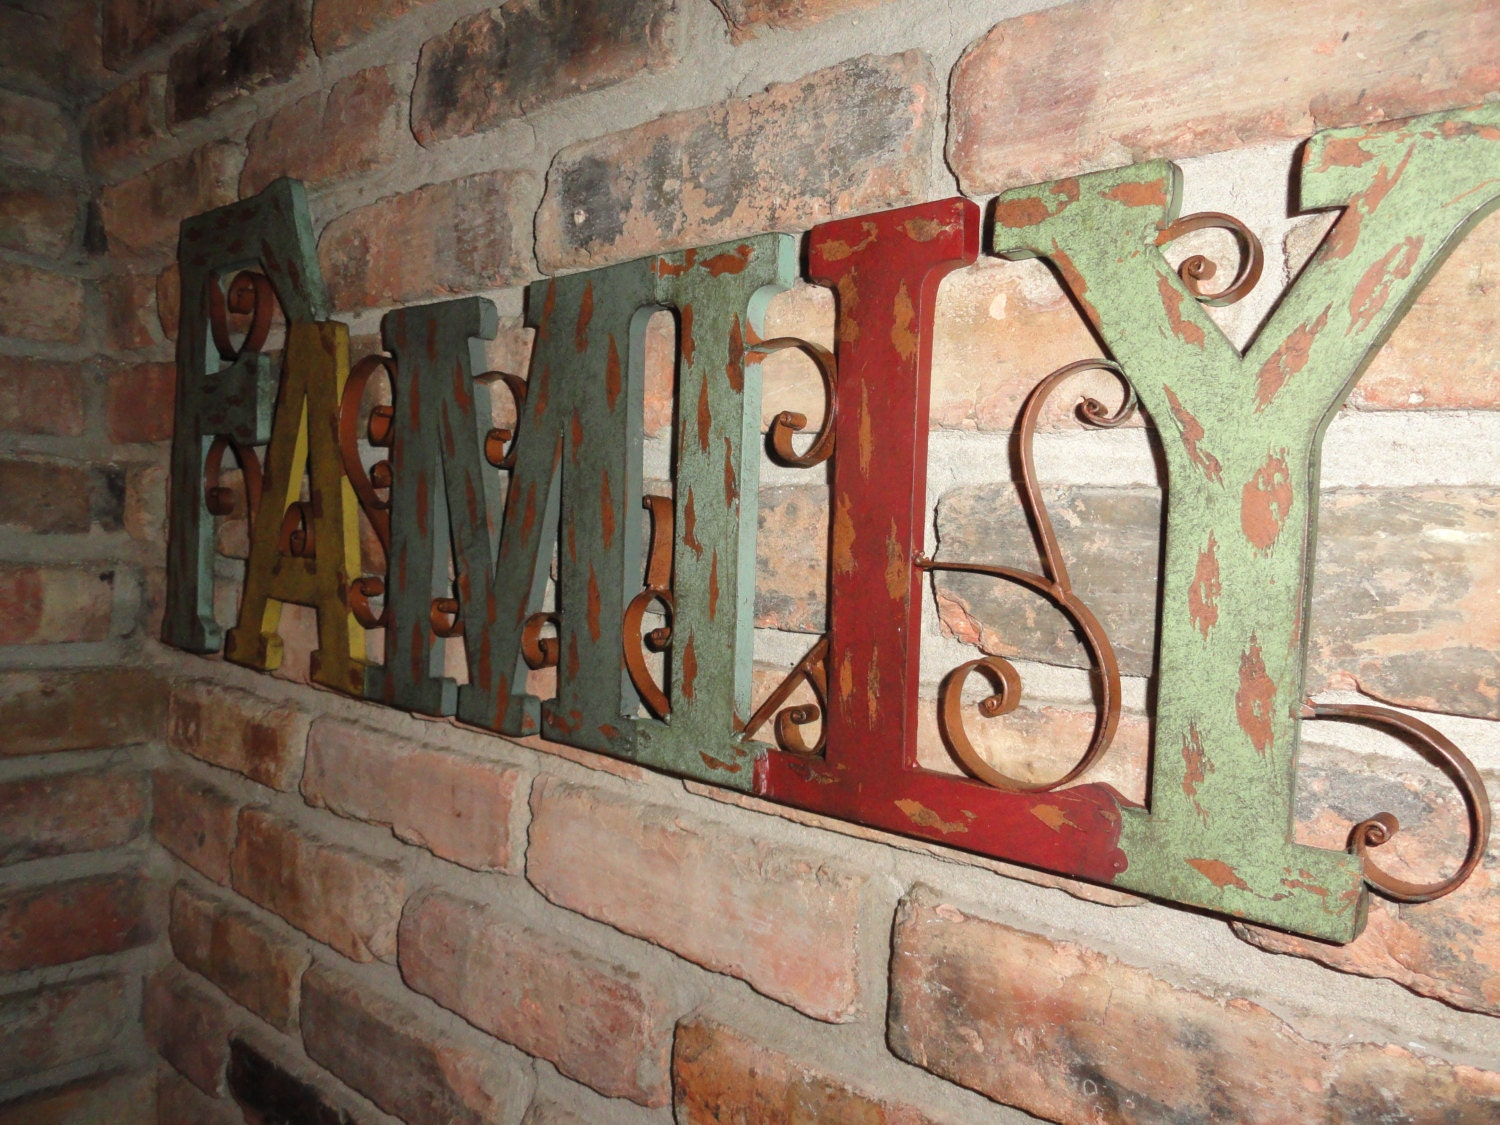 Family Metal Wall Decor Rustic Finish Home Decor Scroll